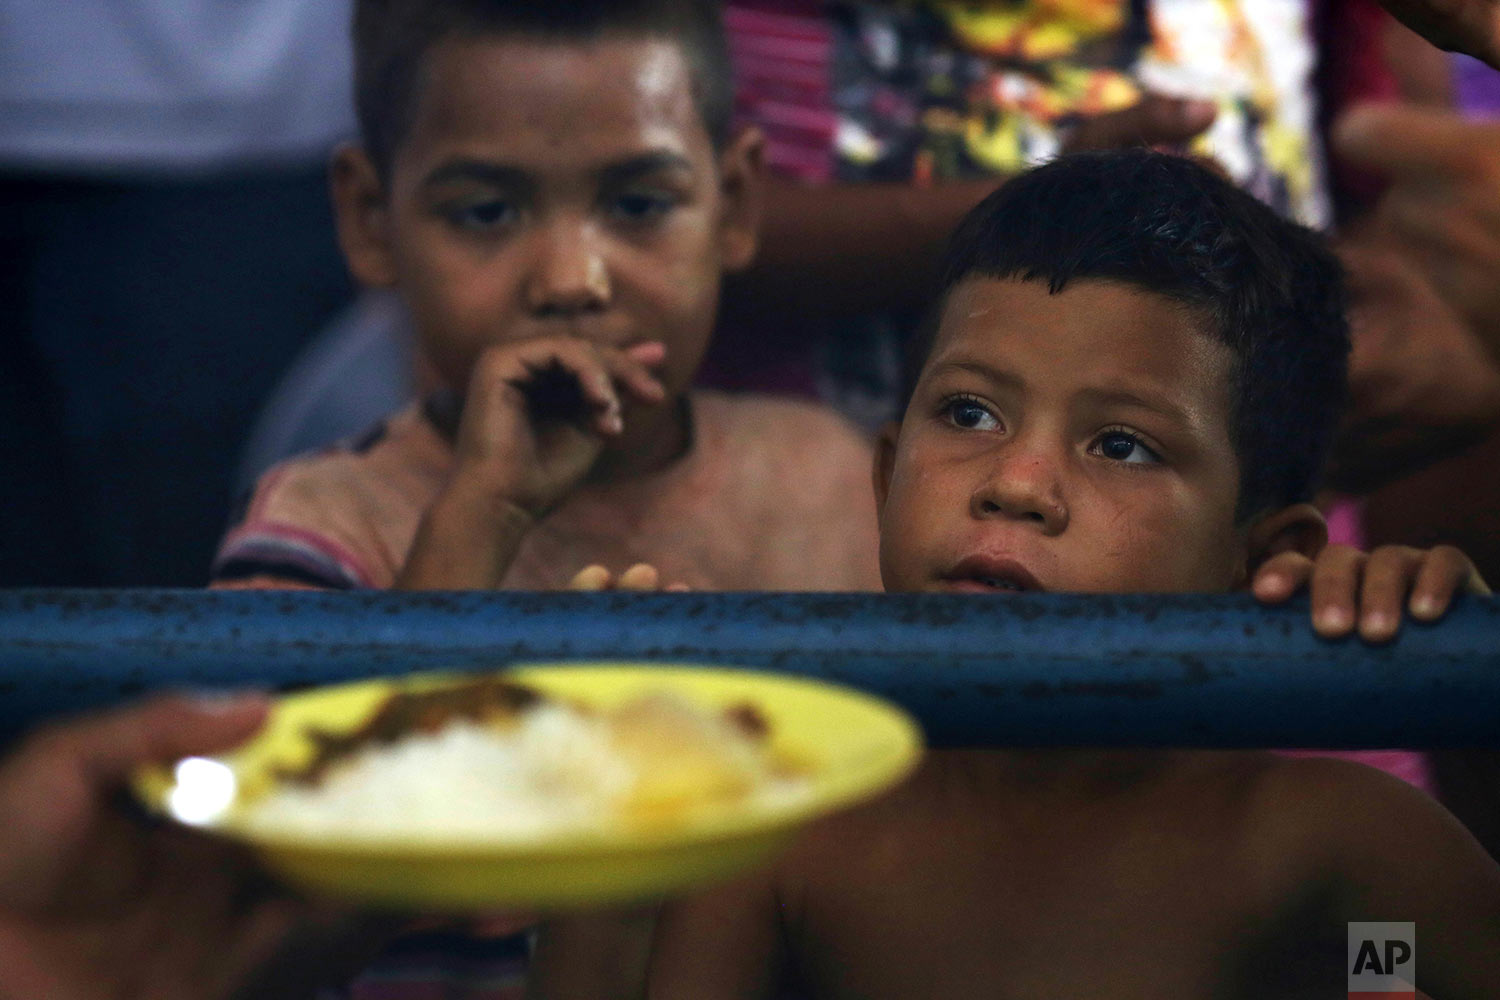 Venezuelan children wait for a free meal at a migrant shelter set up at the Tancredo Neves Gymnasium in Boa Vista, Roraima state, Brazil, March 8, 2018. (AP Photo/Eraldo Peres)